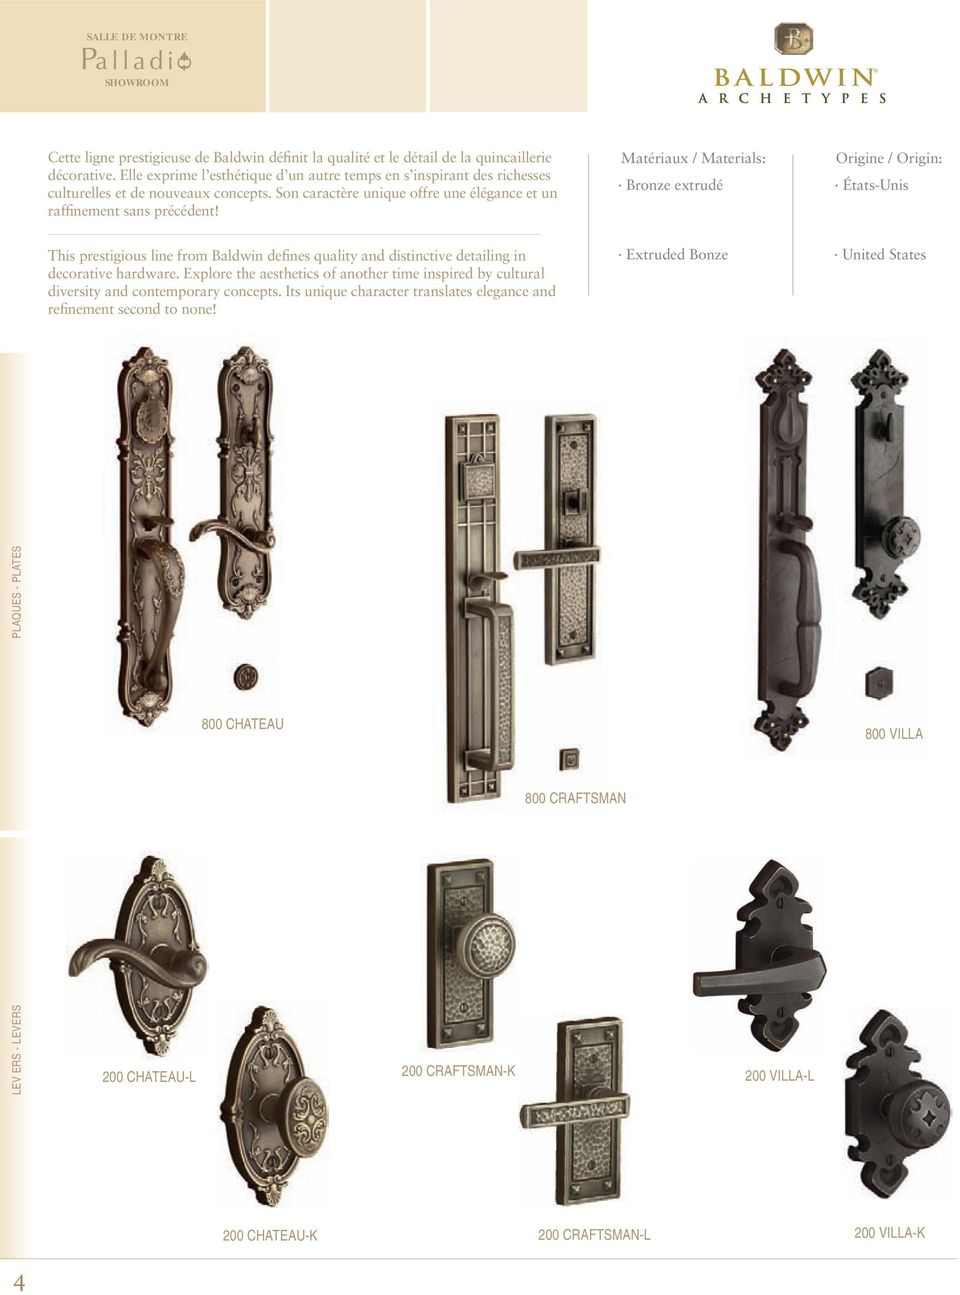 Bronze extrudé États-Unis This prestigious line from Baldwin defines quality and distinctive detailing in decorative hardware.